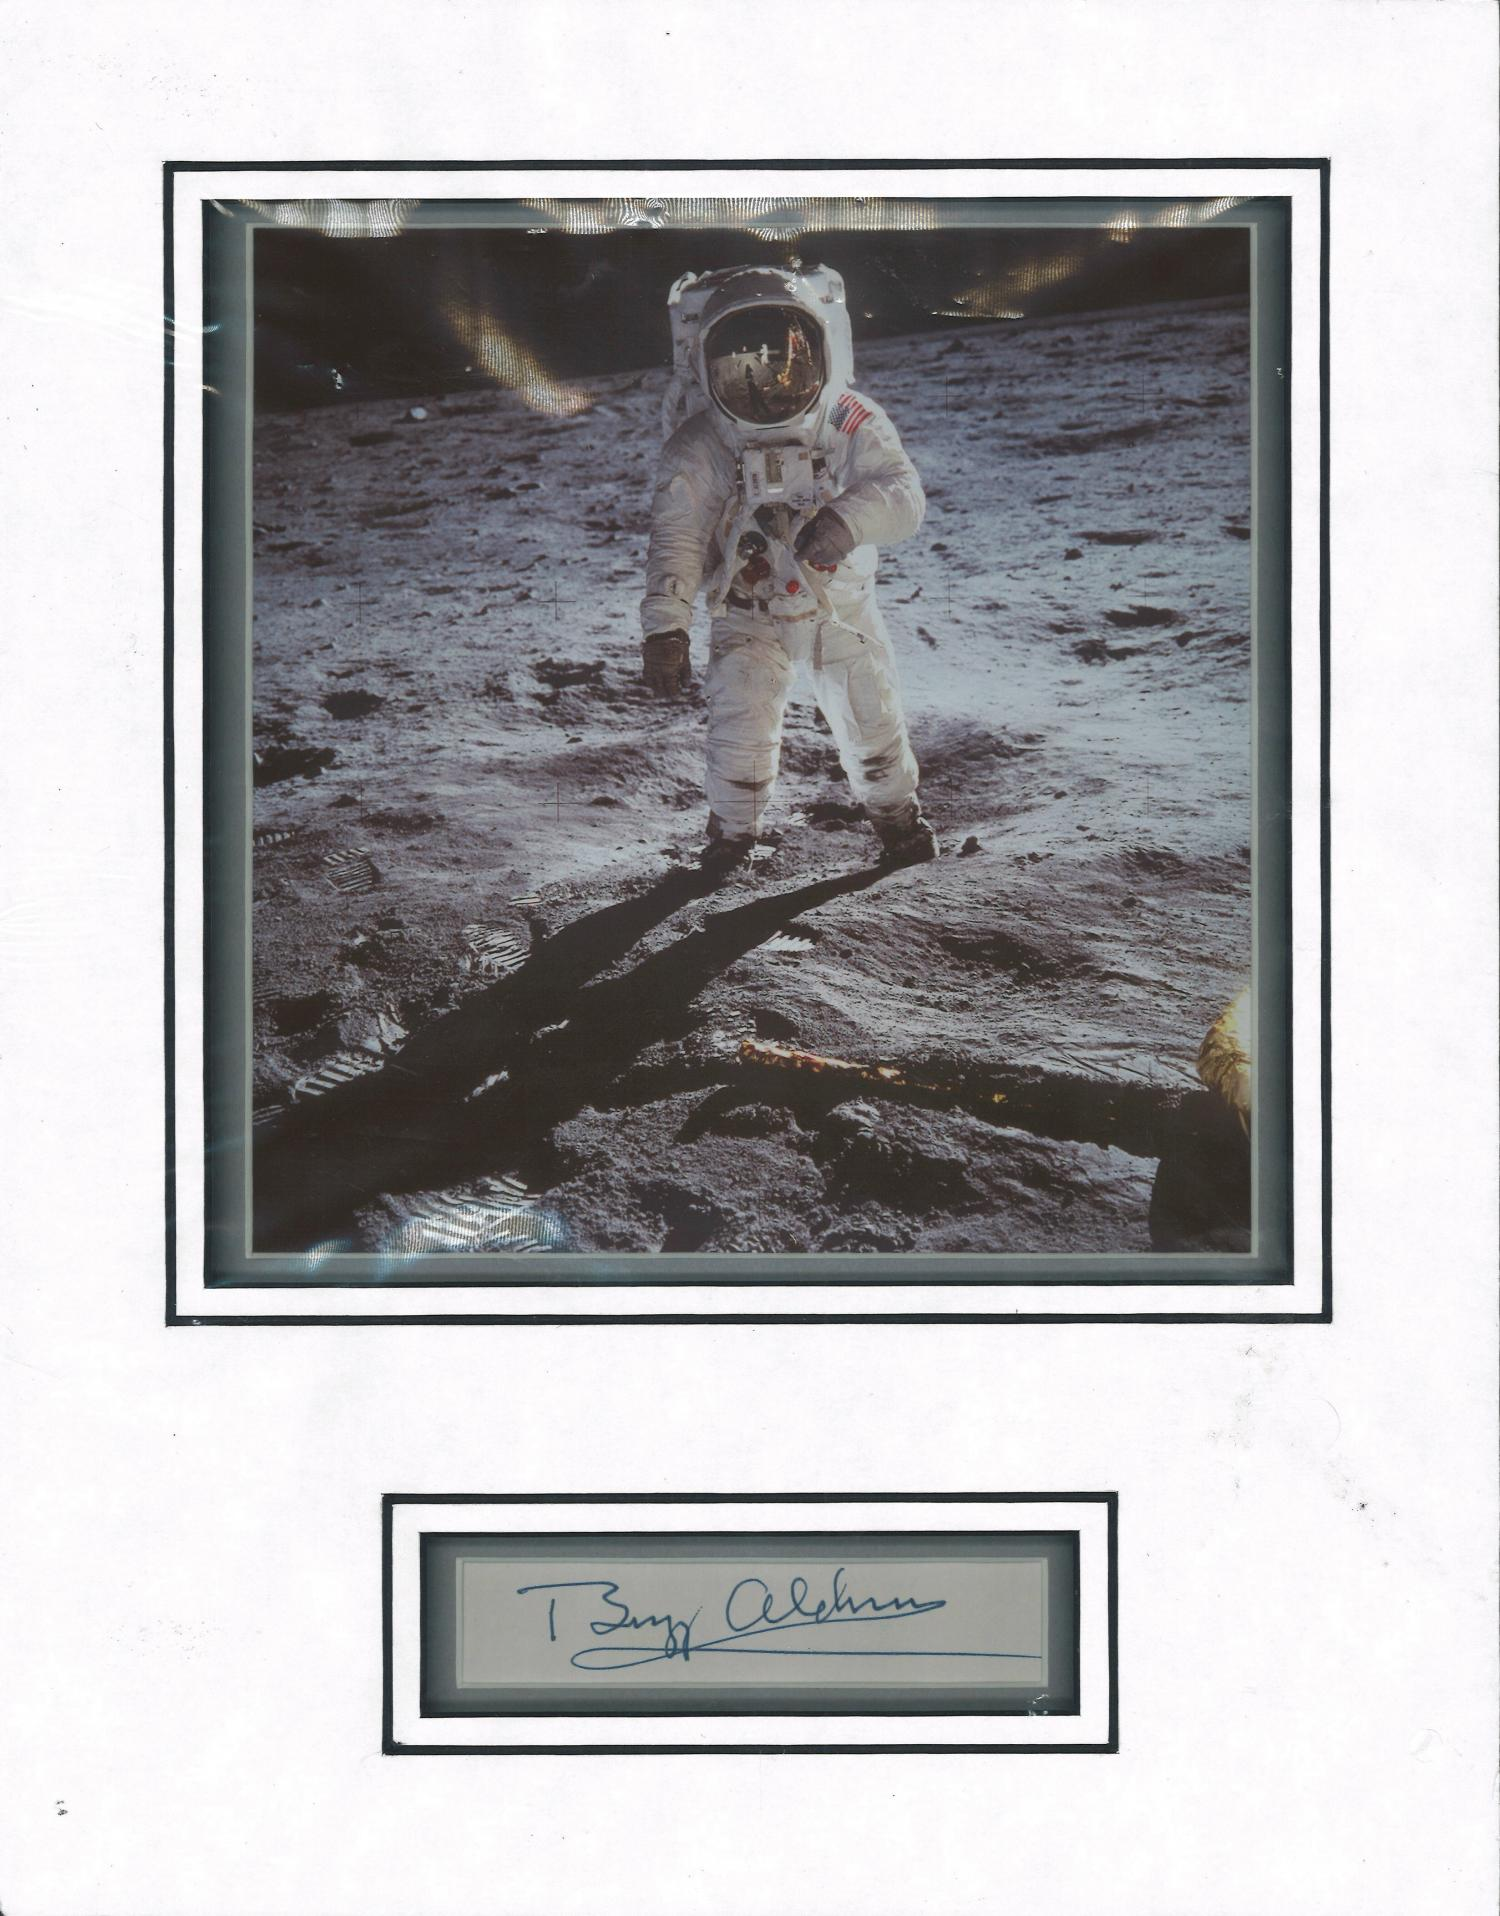 Lot 27 - Buzz Aldrin genuine authentic signed display. Good Condition. All signed pieces come with a